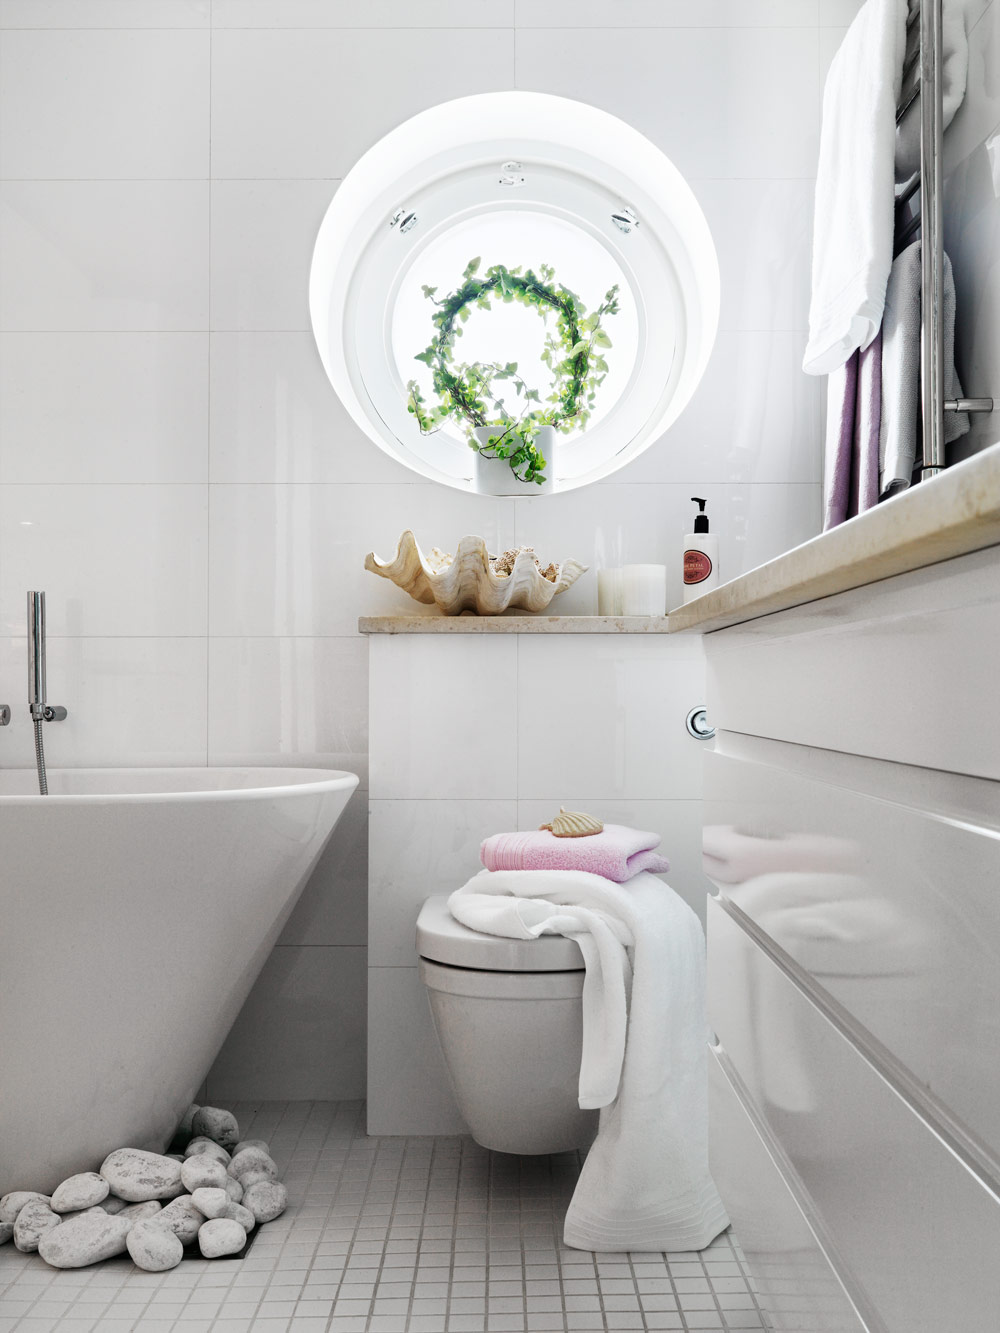 Stylish small bathroom with an unusual decor digsdigs for Bathroom decor pictures